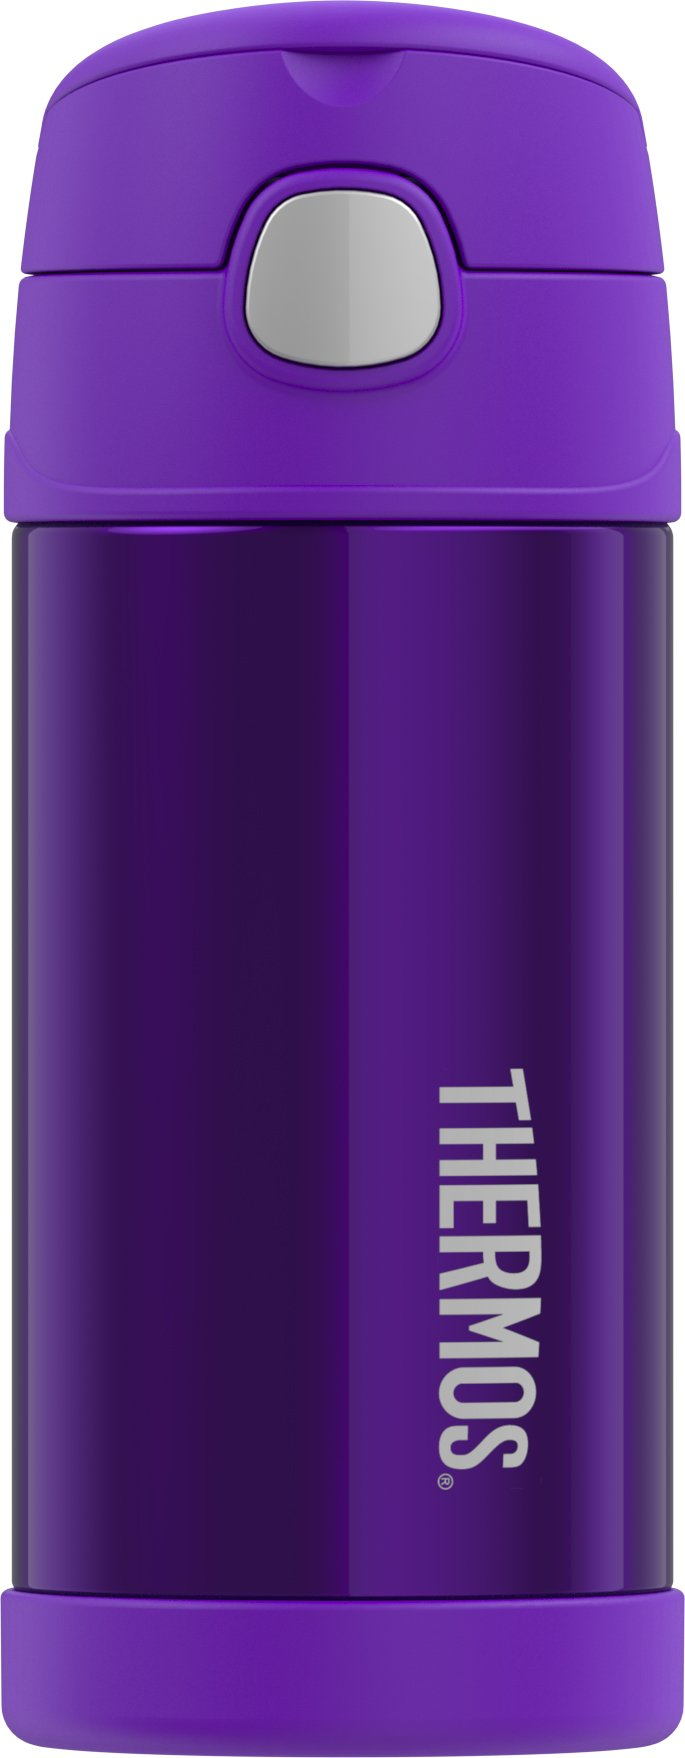 Thermos Funtainer 12 Ounce Bottle, Violet